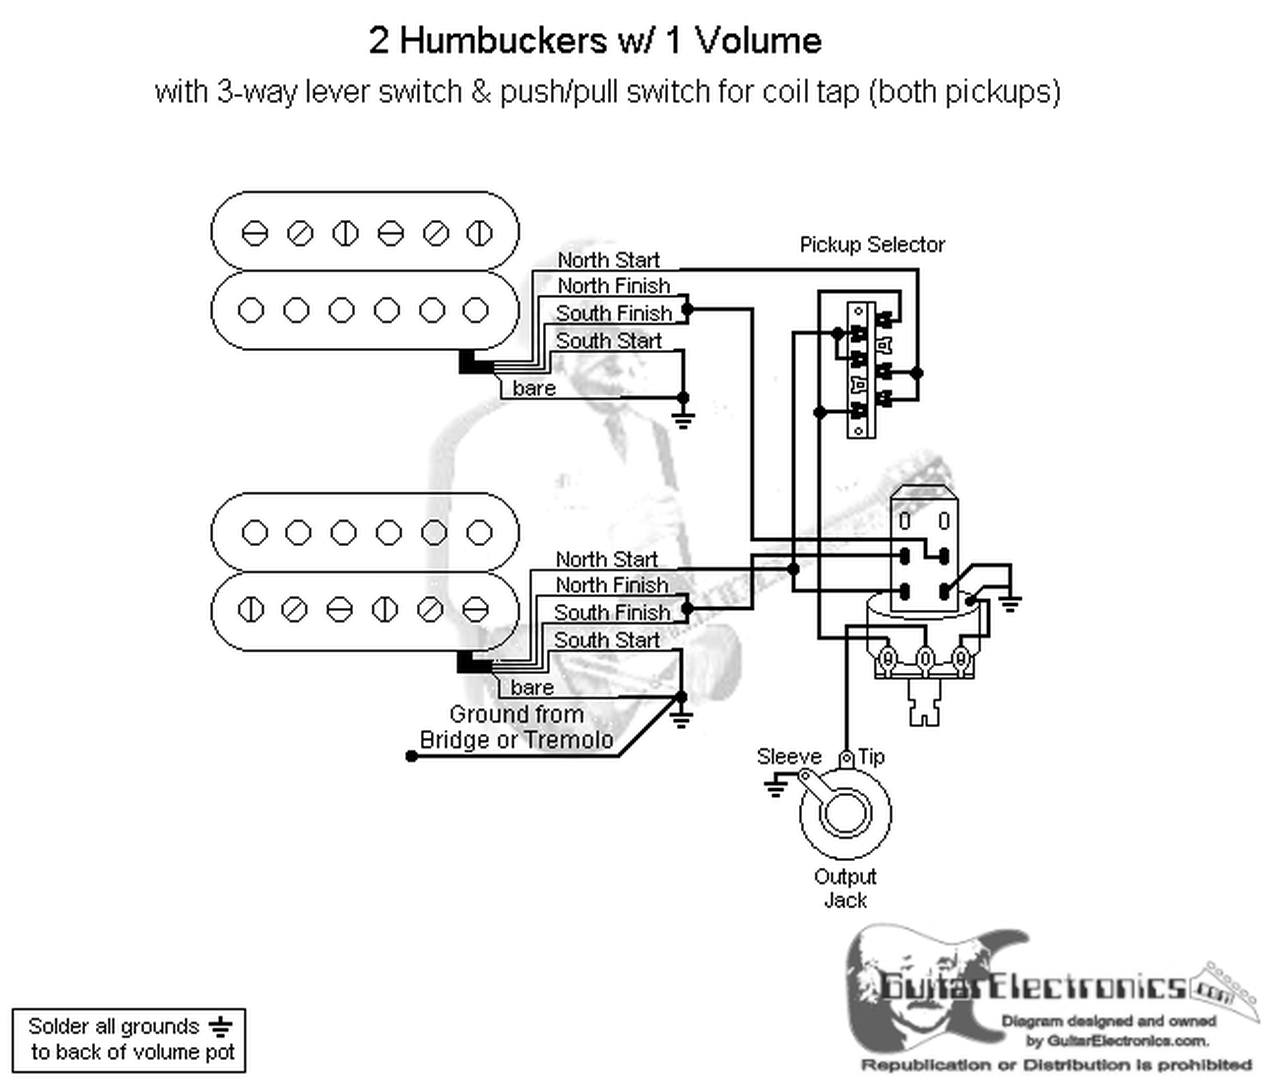 2 Humbuckers/3-Way Lever Switch/1 Volume/Coil Tap on switch circuit diagram, switch lights, network switch diagram, relay switch diagram, wall switch diagram, switch starter diagram, 3-way switch diagram, switch battery diagram, electrical outlets diagram, switch socket diagram, rocker switch diagram, switch outlets diagram,